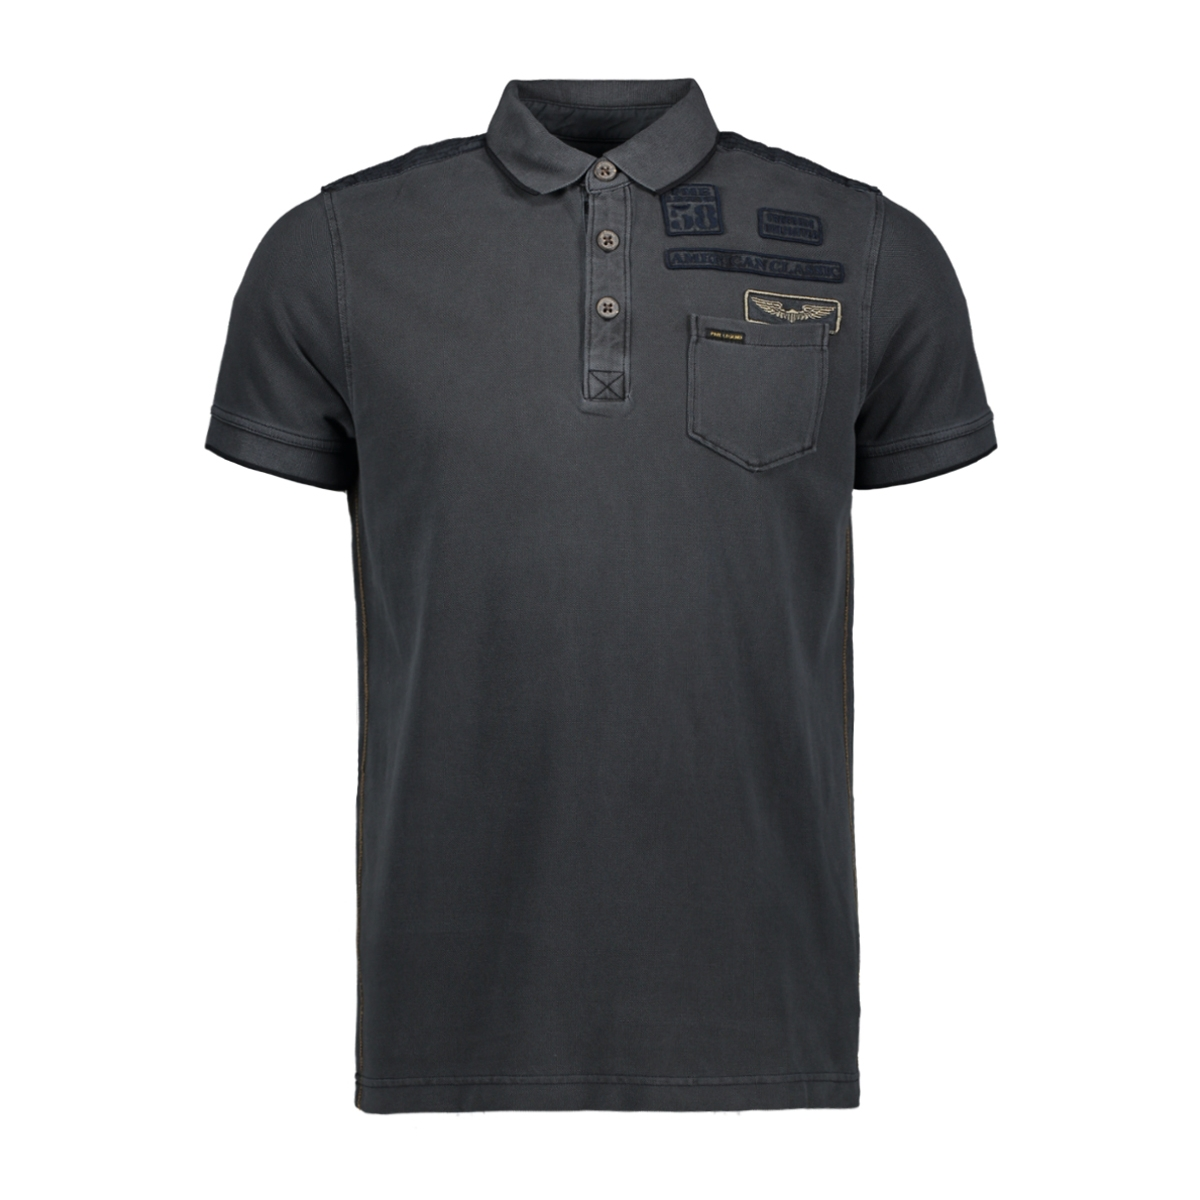 short sleeve polo ppss193850 pme legend polo 5287